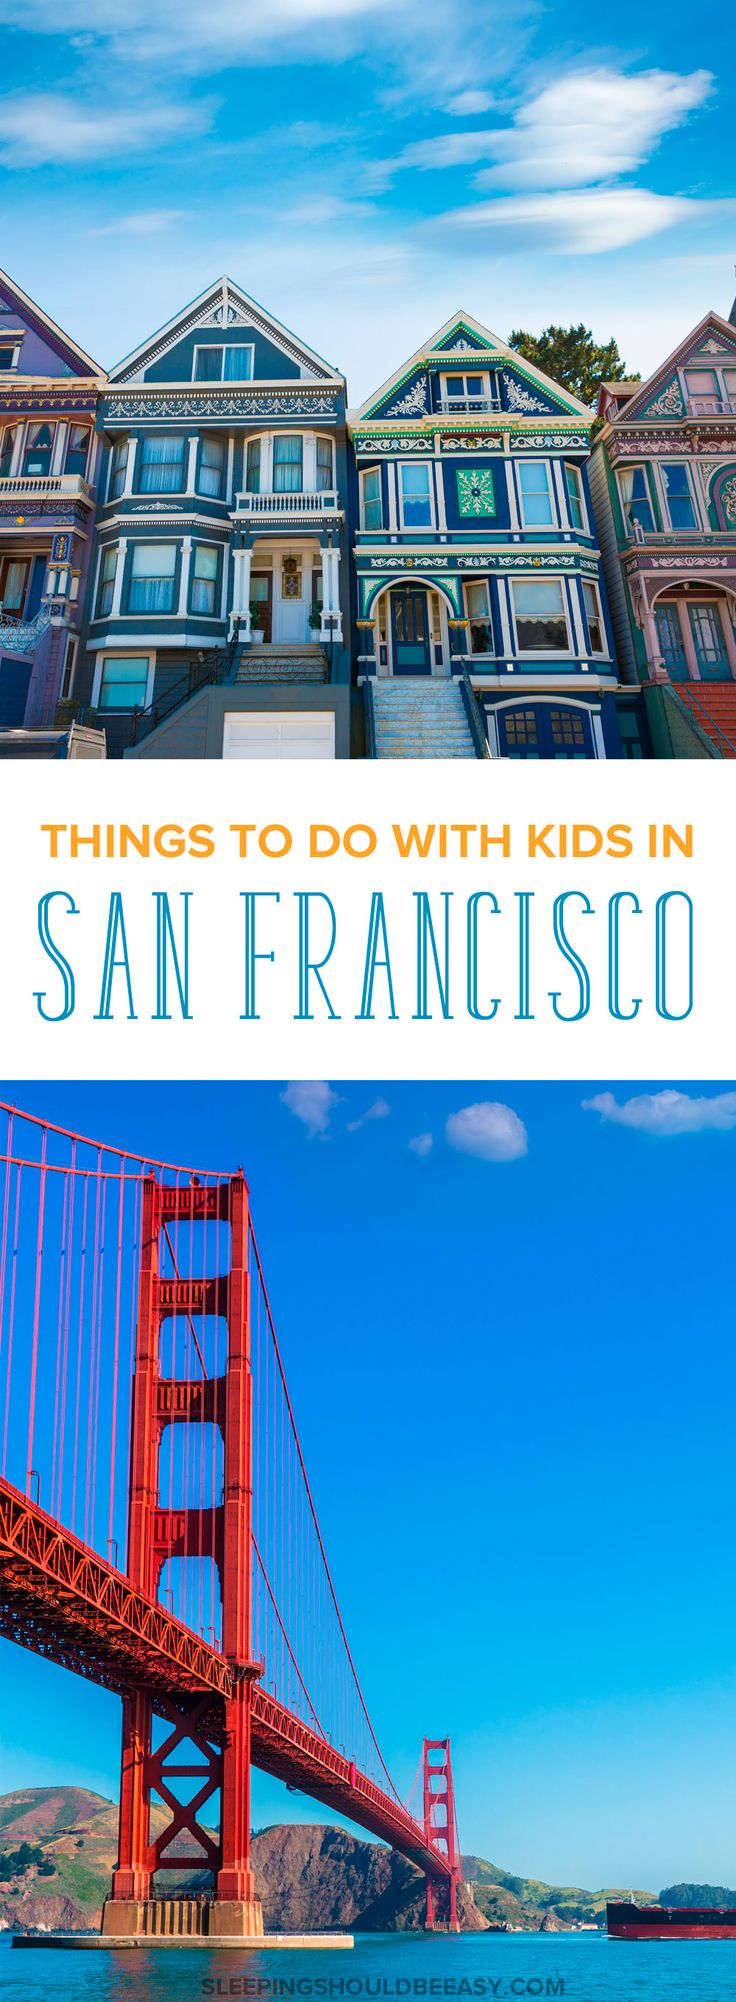 Looking for fun things to do in San Francisco with kids? Traveling with children is hard. Here are realistic places to visit and activities for families to do in San Francisco and the Bay Area. #sanfrancisco